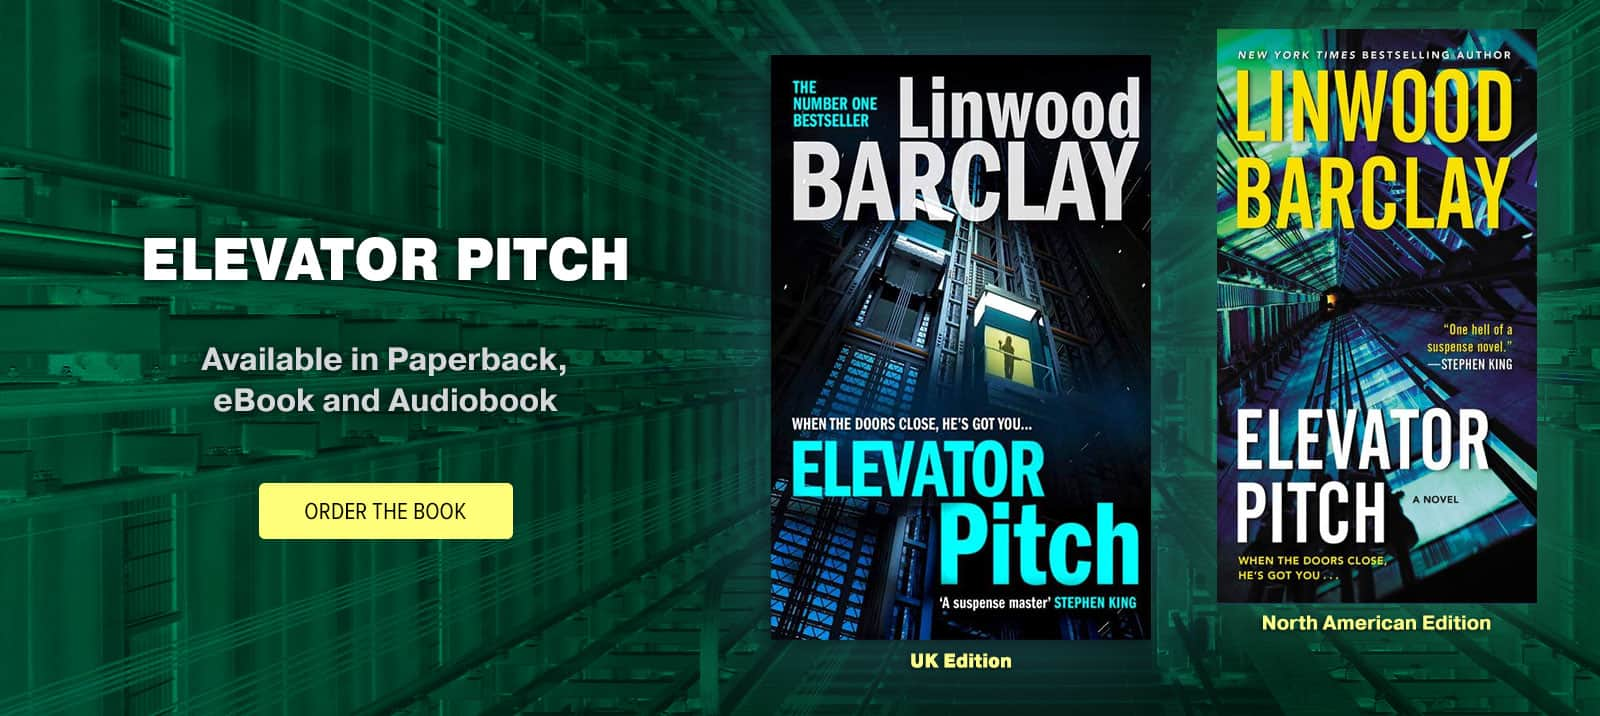 """Elevator Pitch"" by Linwood Barclay, now in Paperback, eBook and Audiobook"